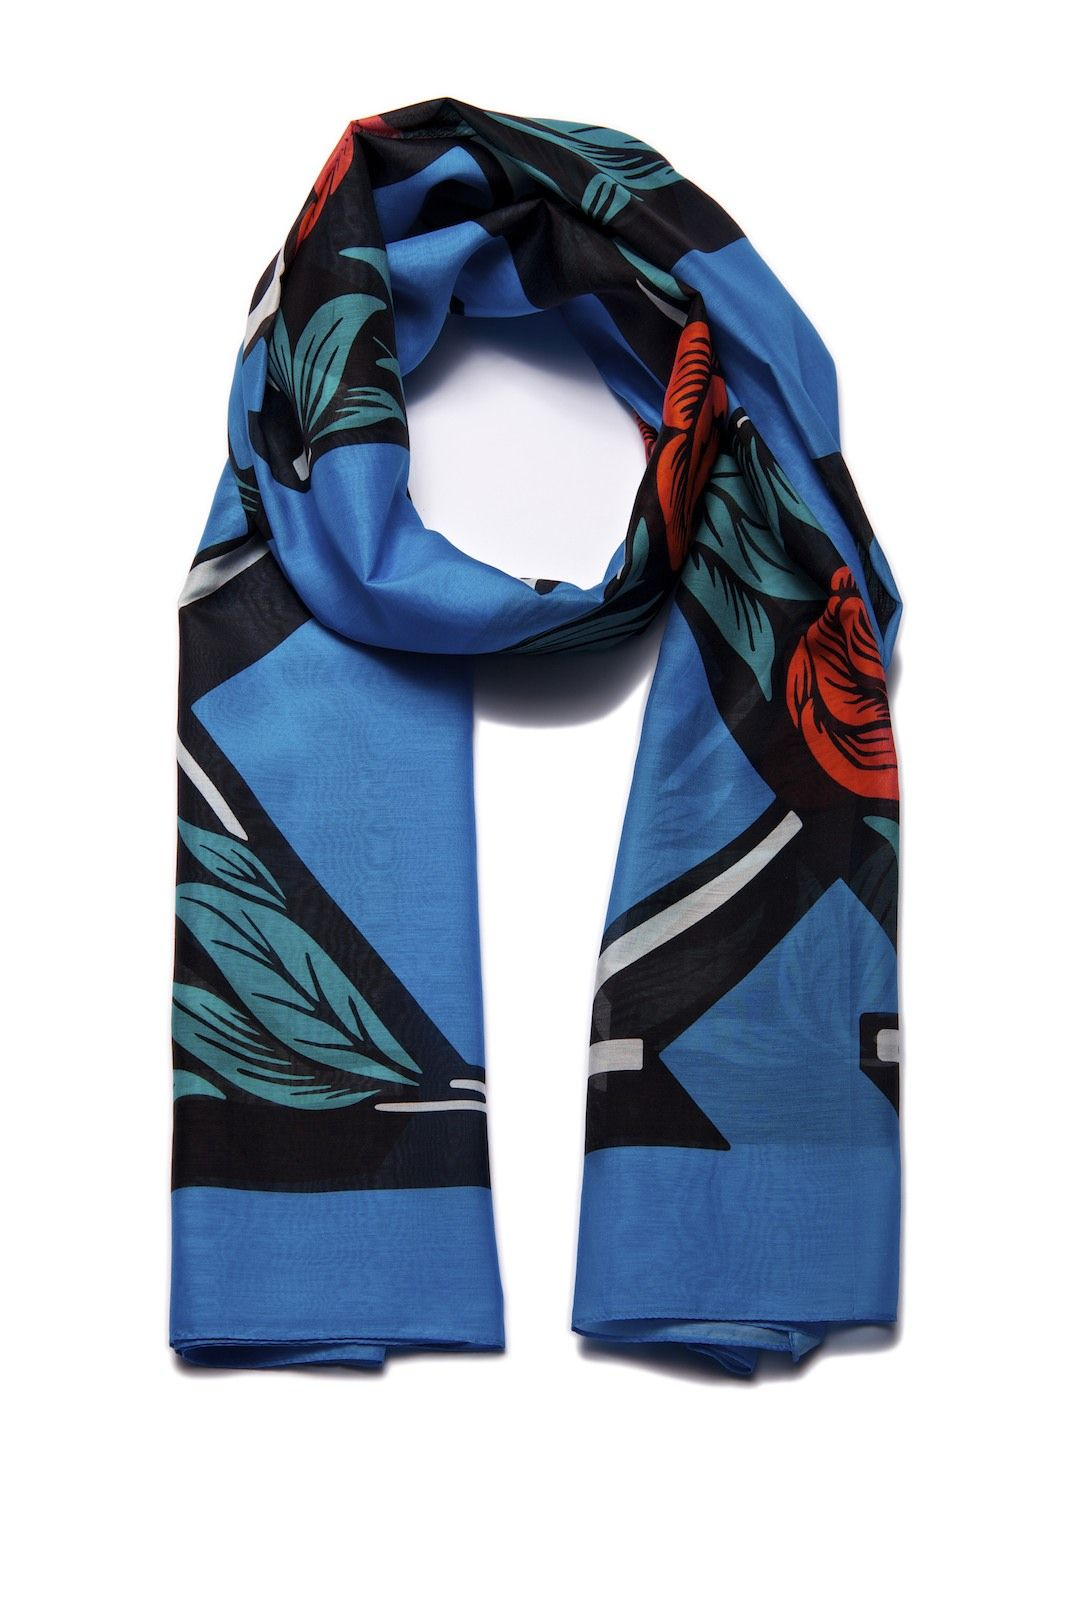 With hugs and kisses - colorful scarf printed on a fine cotton-silk blend. #MomPreneursAdventsbasar